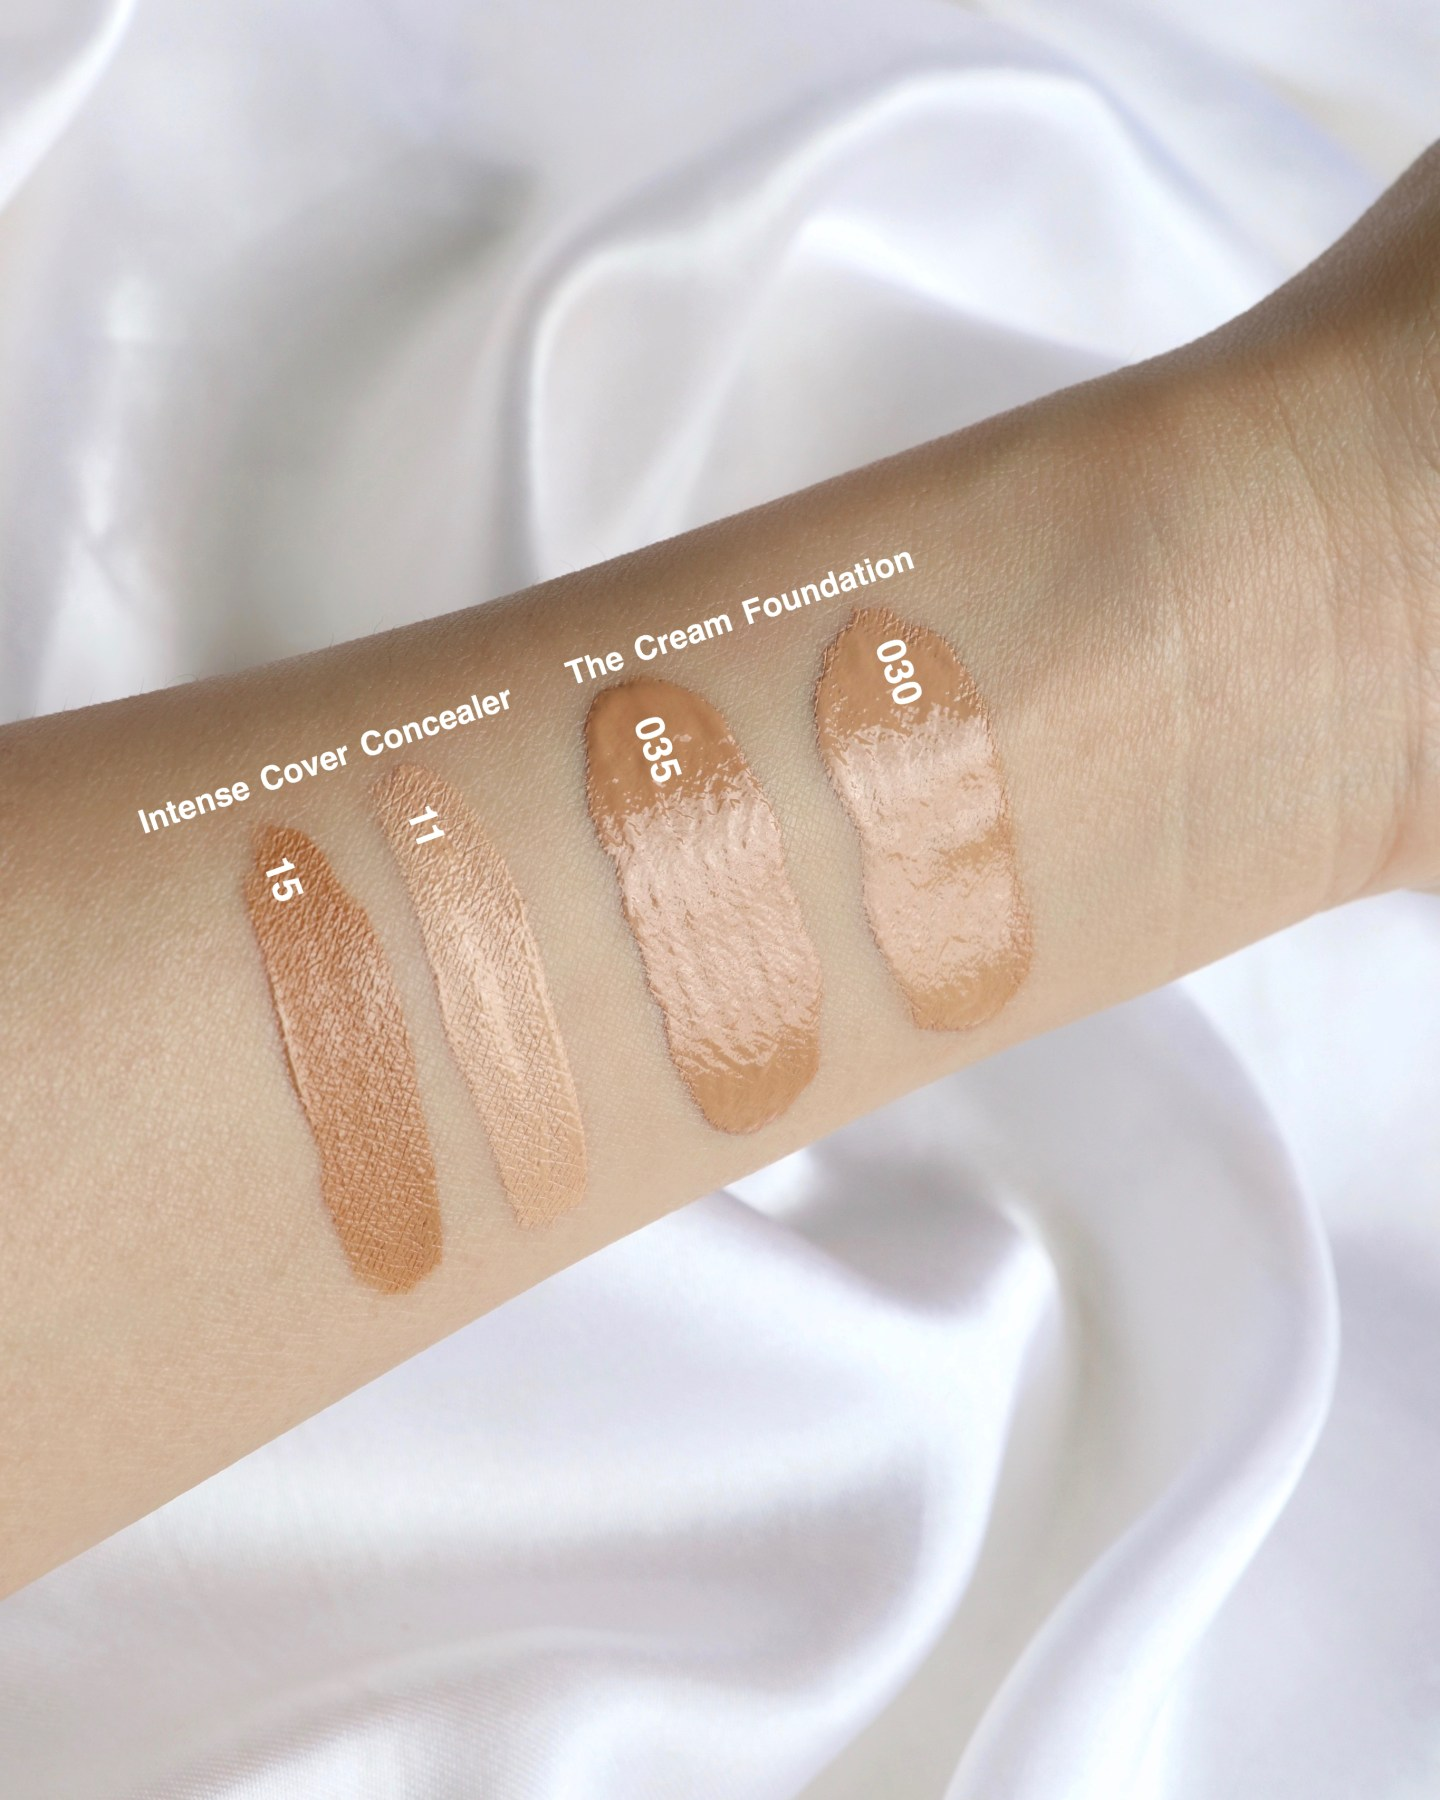 SUQQU Intense Cover Concealer Swatches